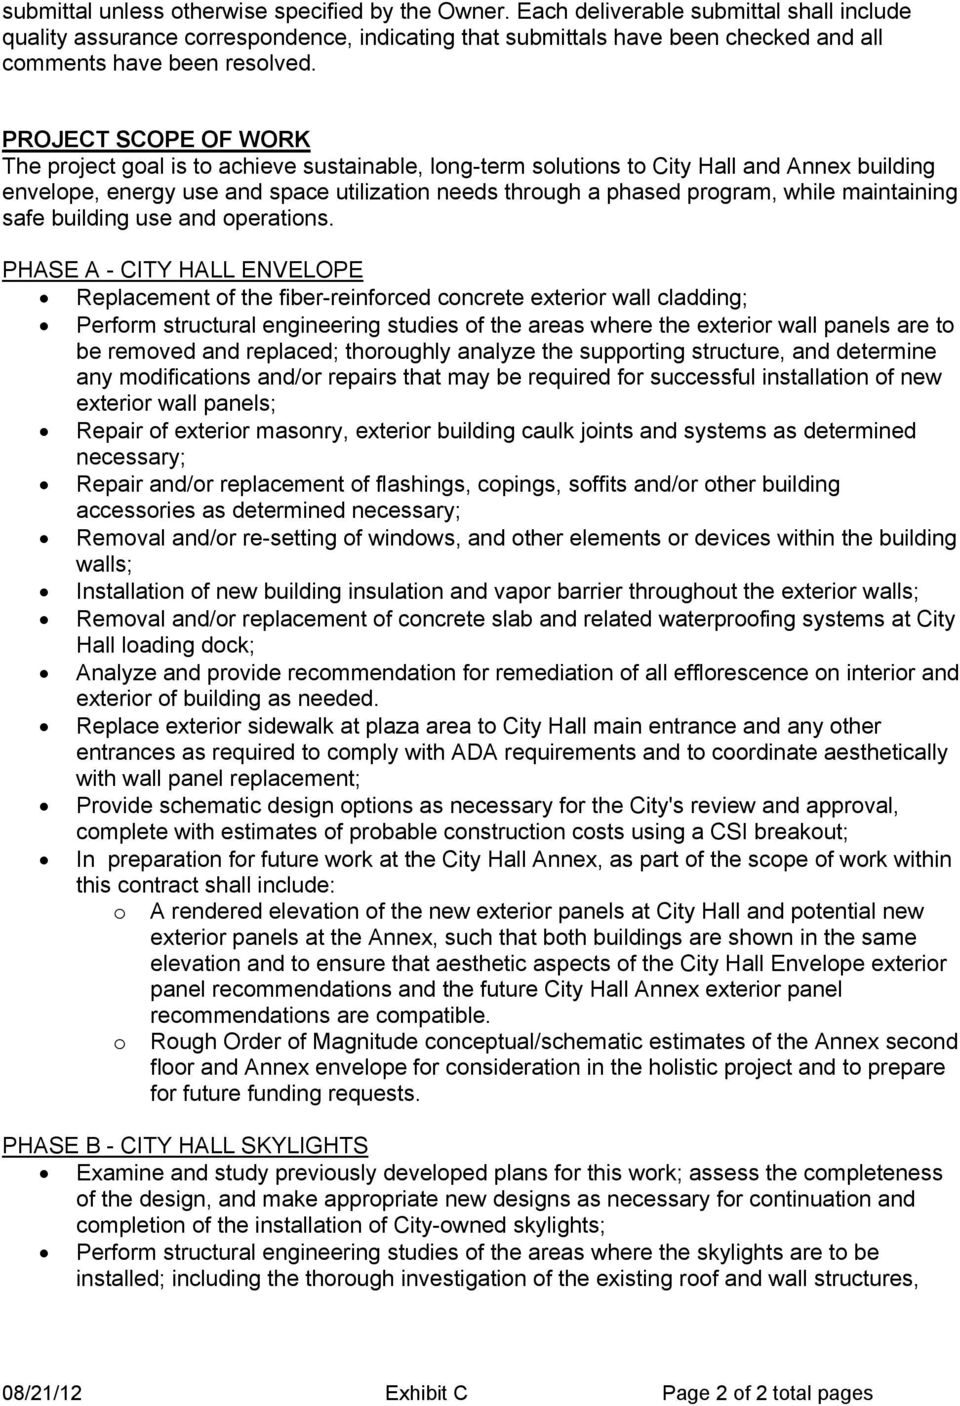 PROJECT SCOPE OF WORK The project goal is to achieve sustainable, long-term solutions to City Hall and Annex building envelope, energy use and space utilization needs through a phased program, while